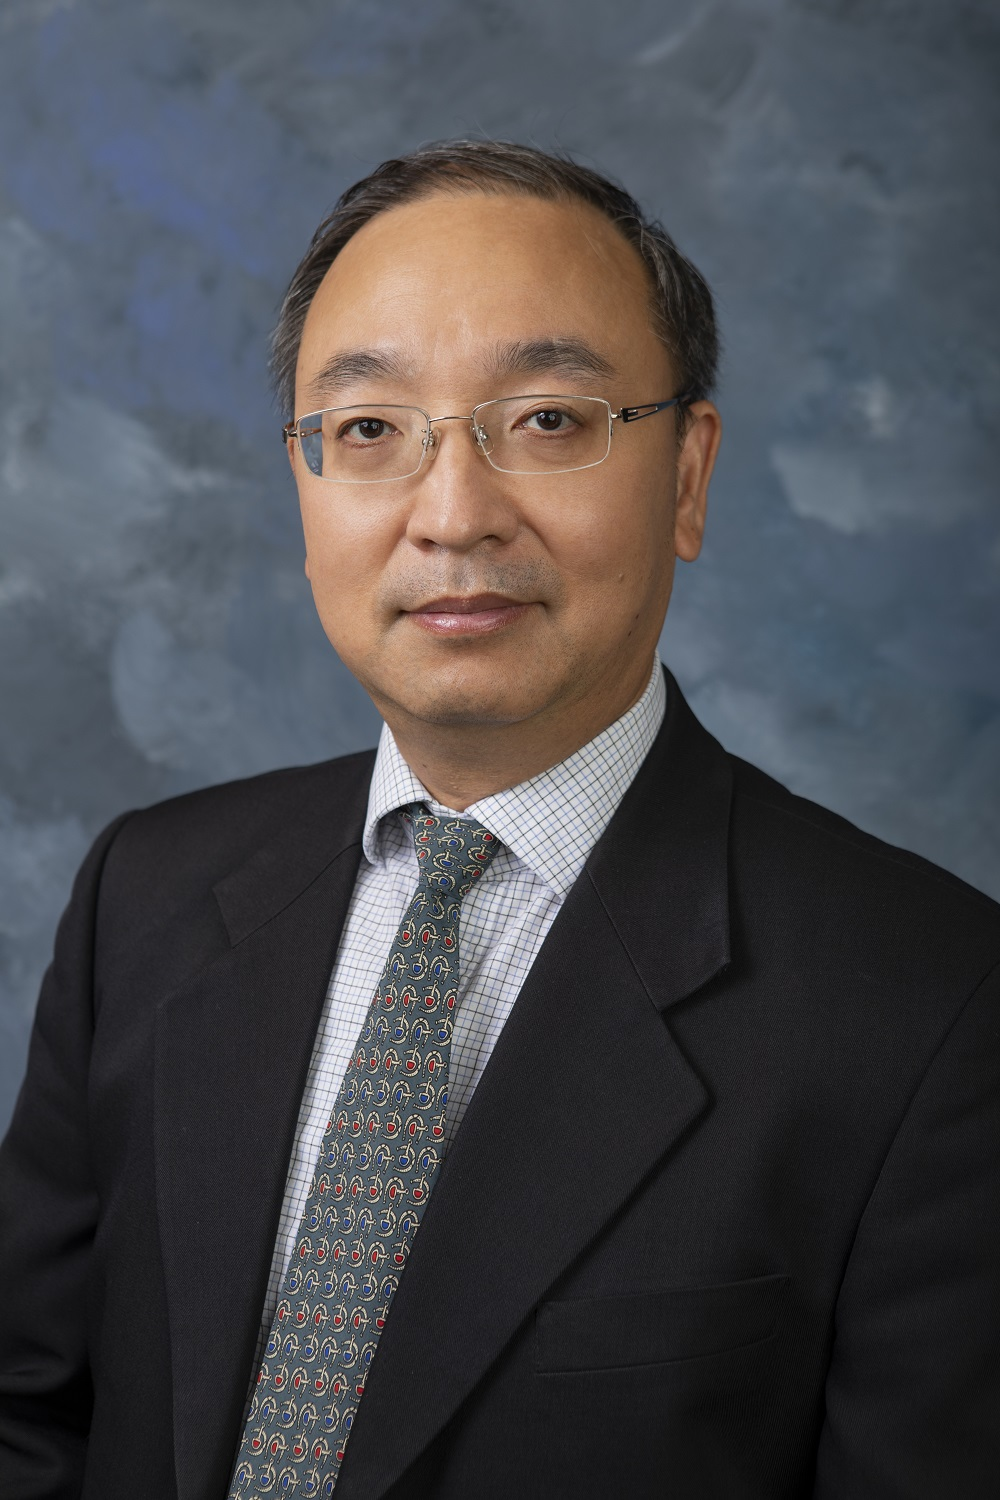 Dr. Hsiao